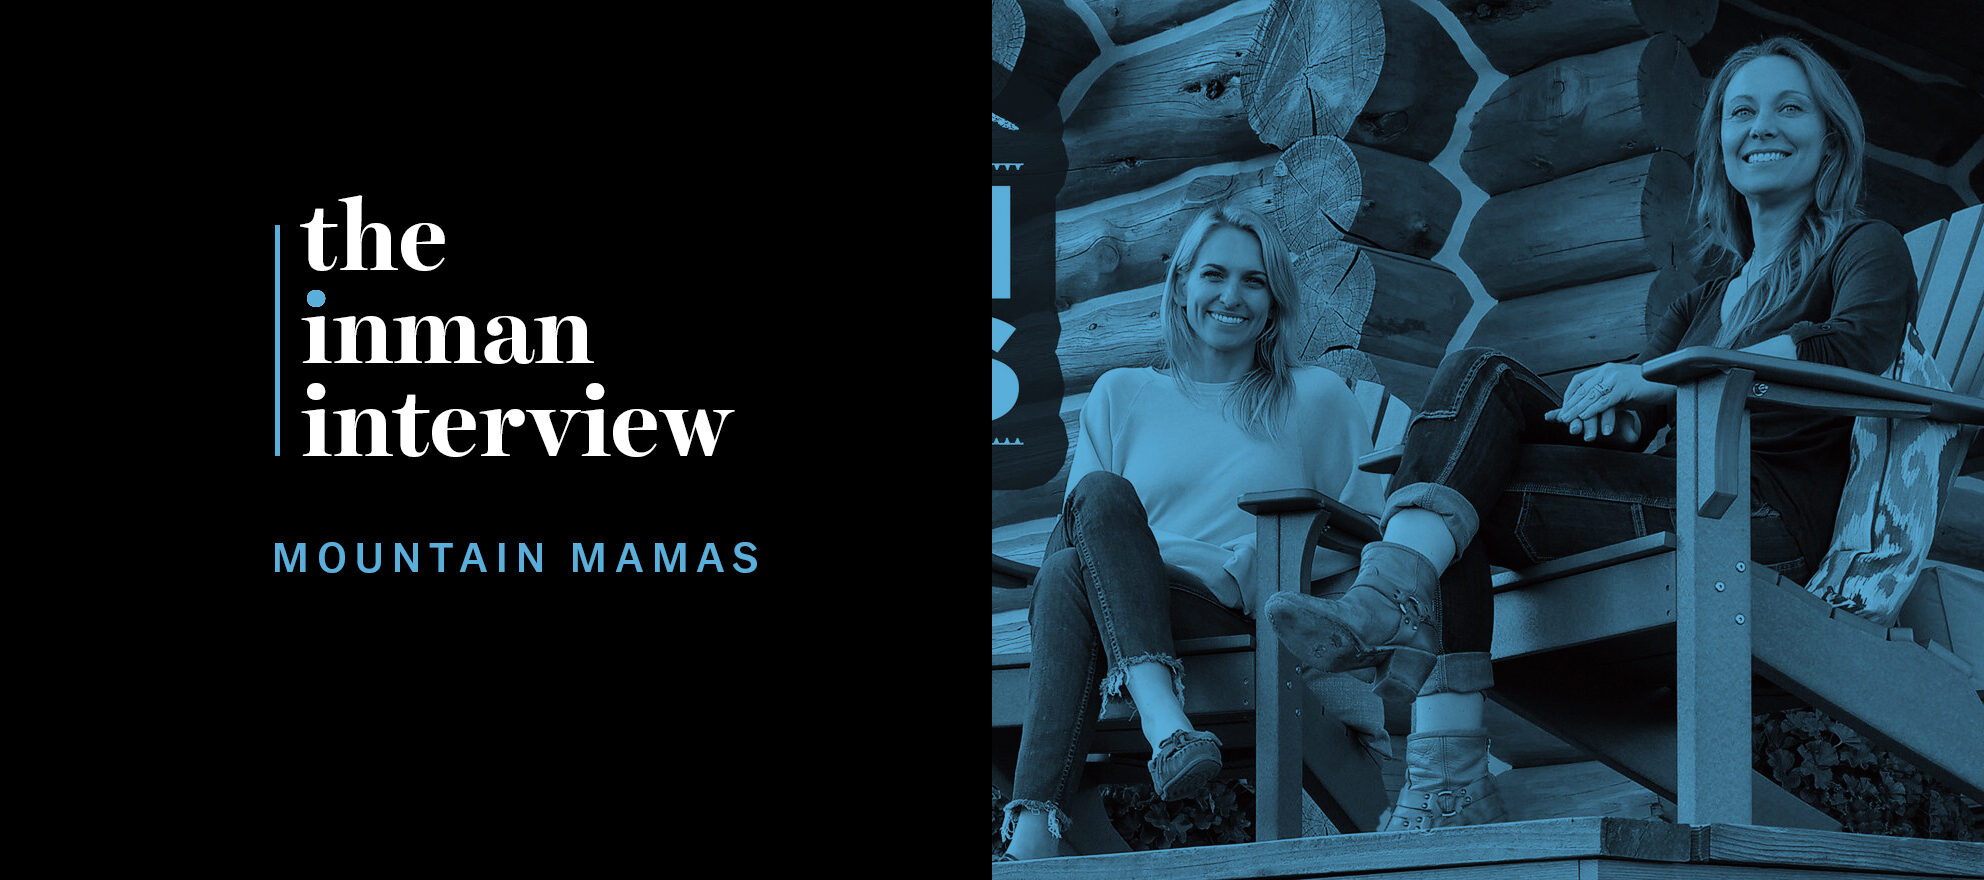 'It's 2 women running the show': TV's 'Mountain Mamas' speak out